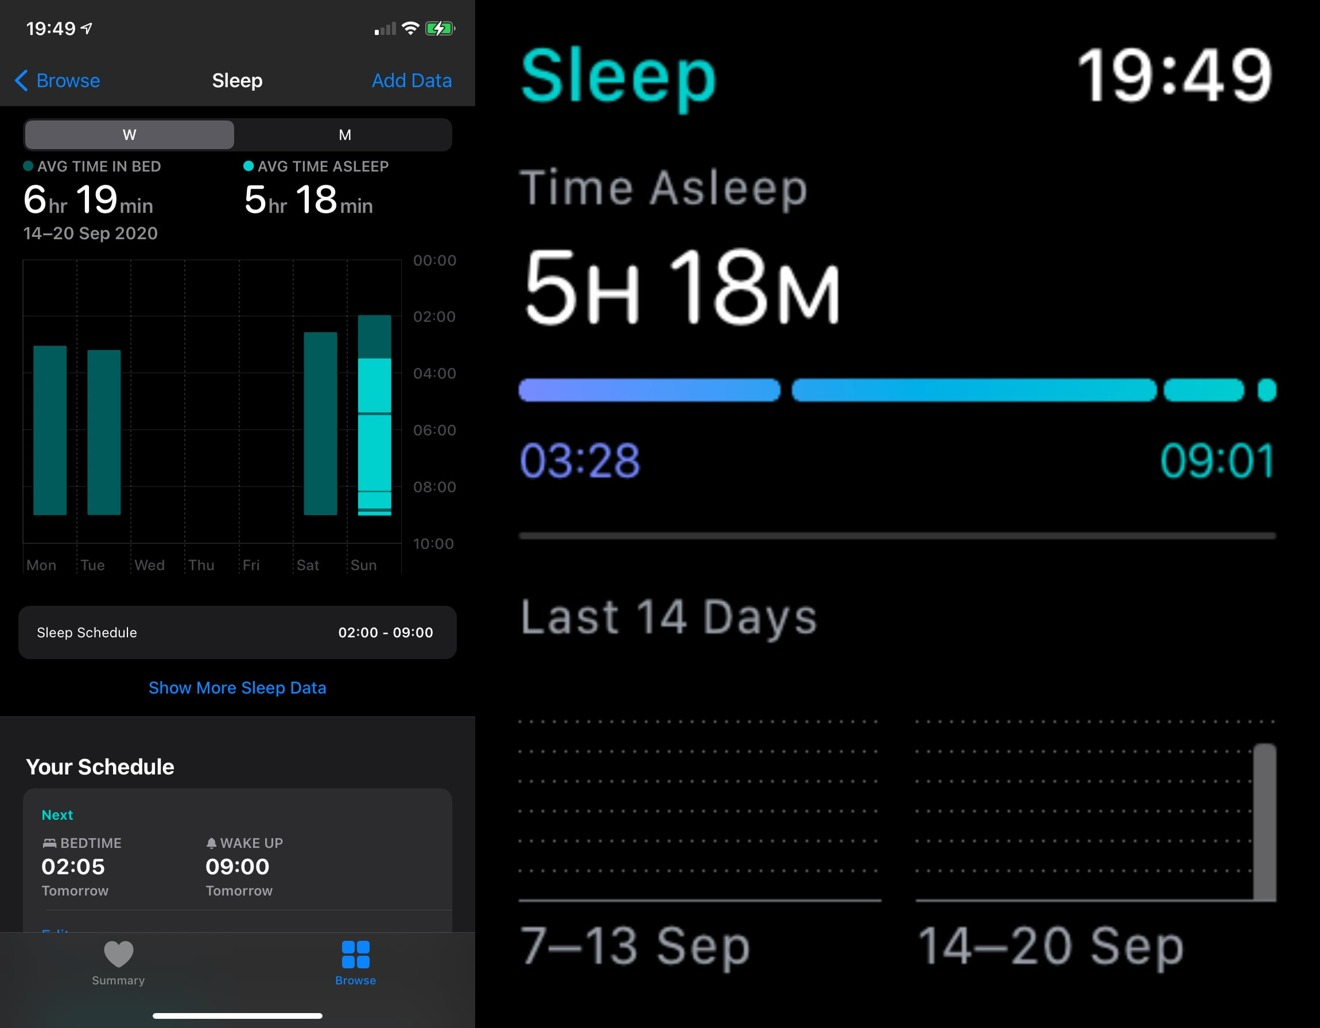 Both the Apple Watch and iPhone offer sleep tracking data.